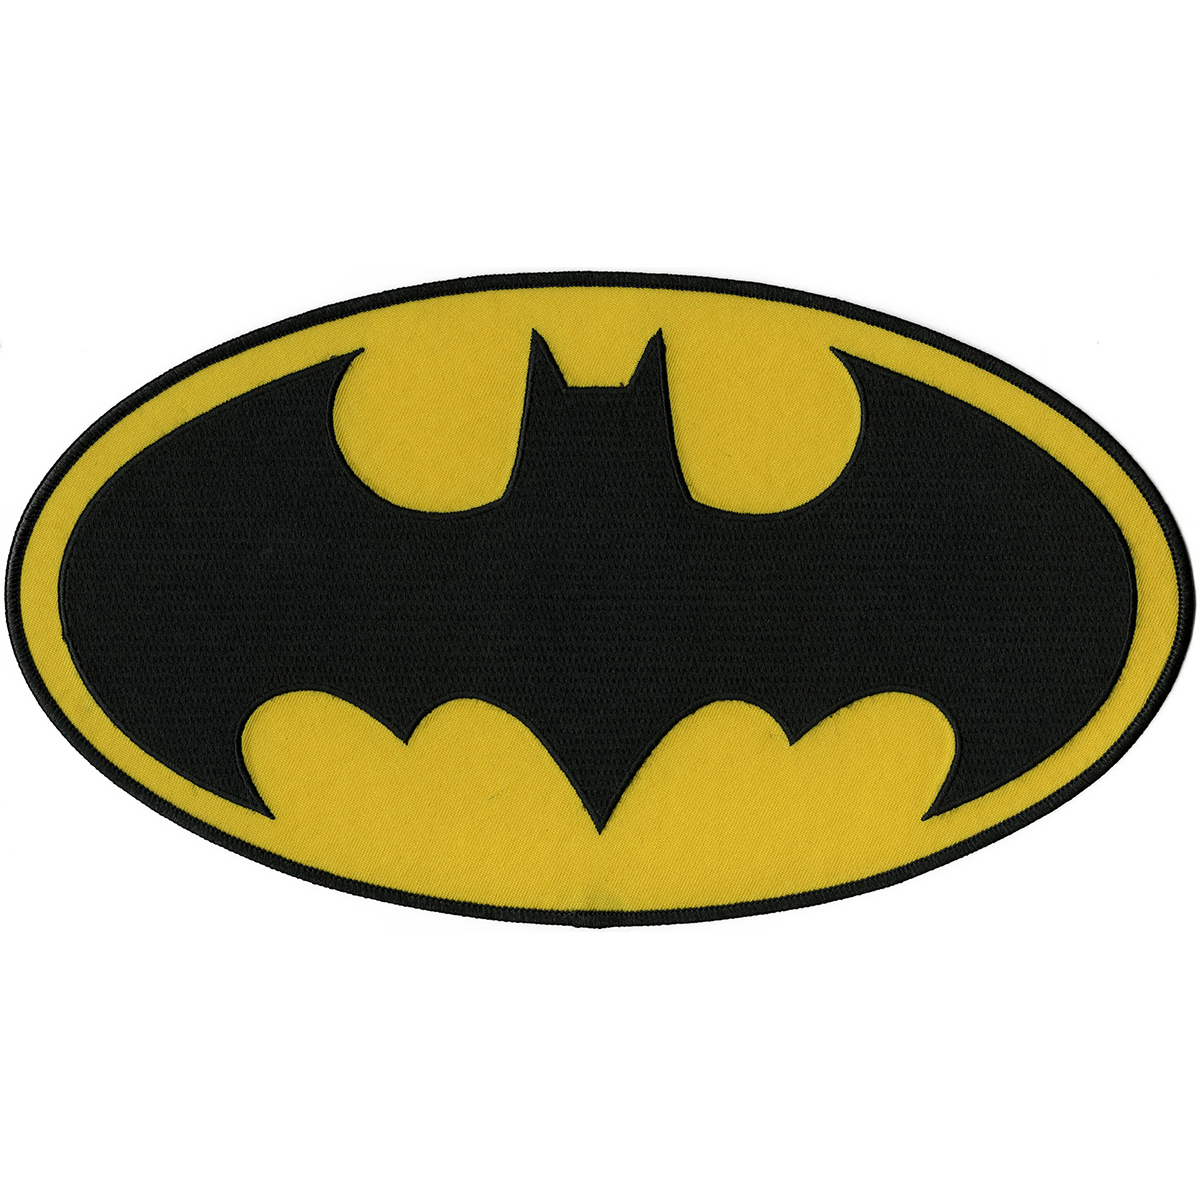 "C&D Visionary DC Comics Patch-Batman Insignia 6.75""X12"""